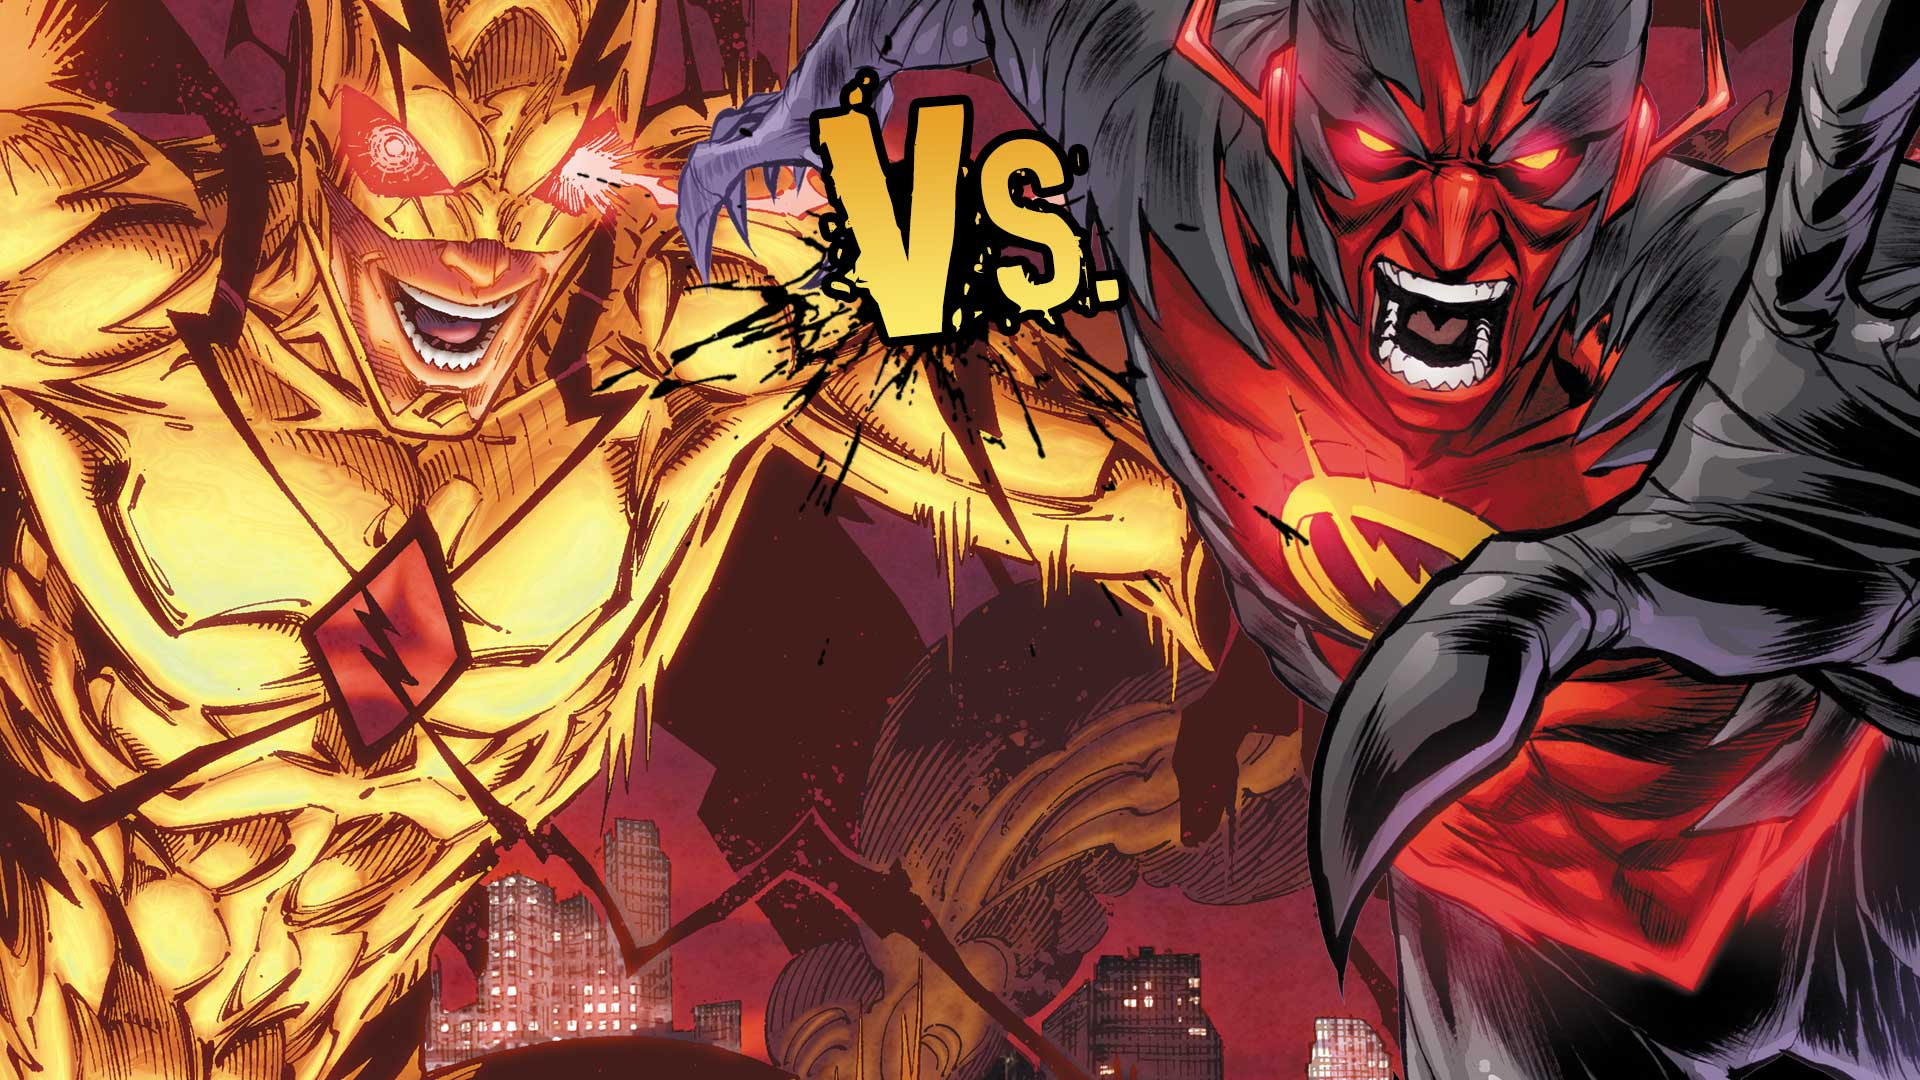 Dc Comics Universe Spoilers Is The Flash War Not About Barry Allen Vs Wally West But Hunter Zolomon Vs Eodbard Thawne Zoom Vs Reverse Flash Updated Inside Pulse